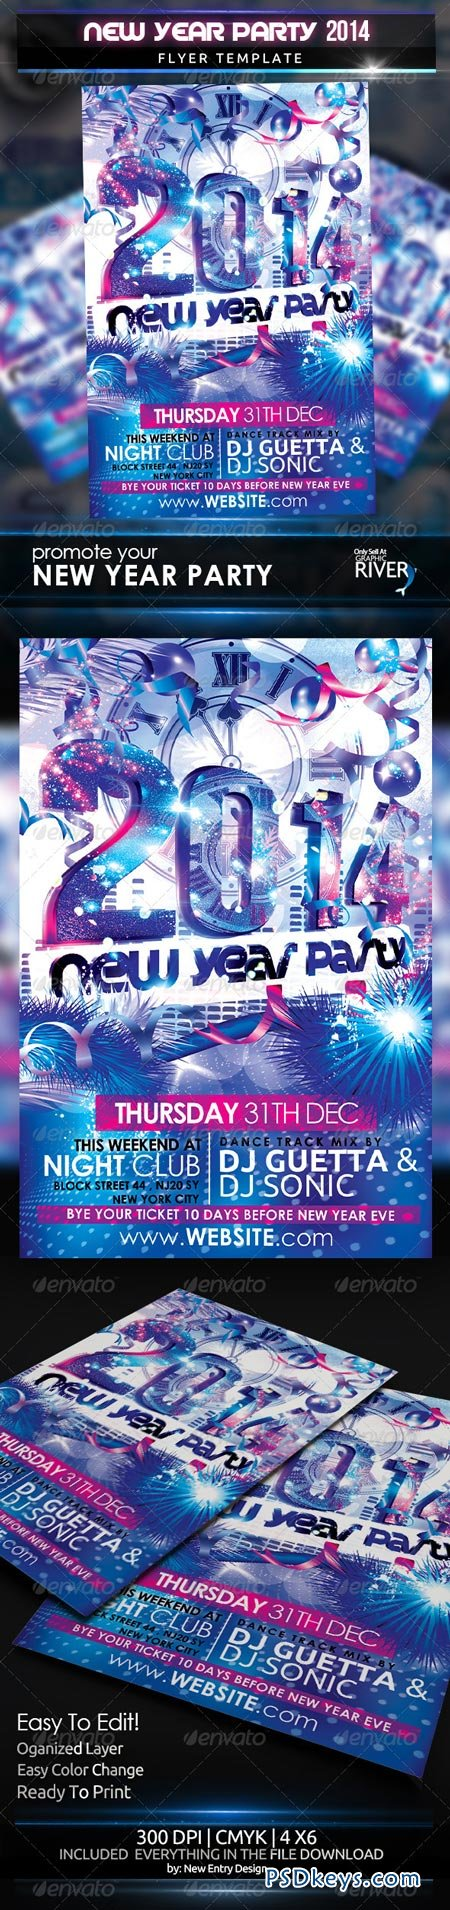 New Year Party 2014 Flyer Template 6296013